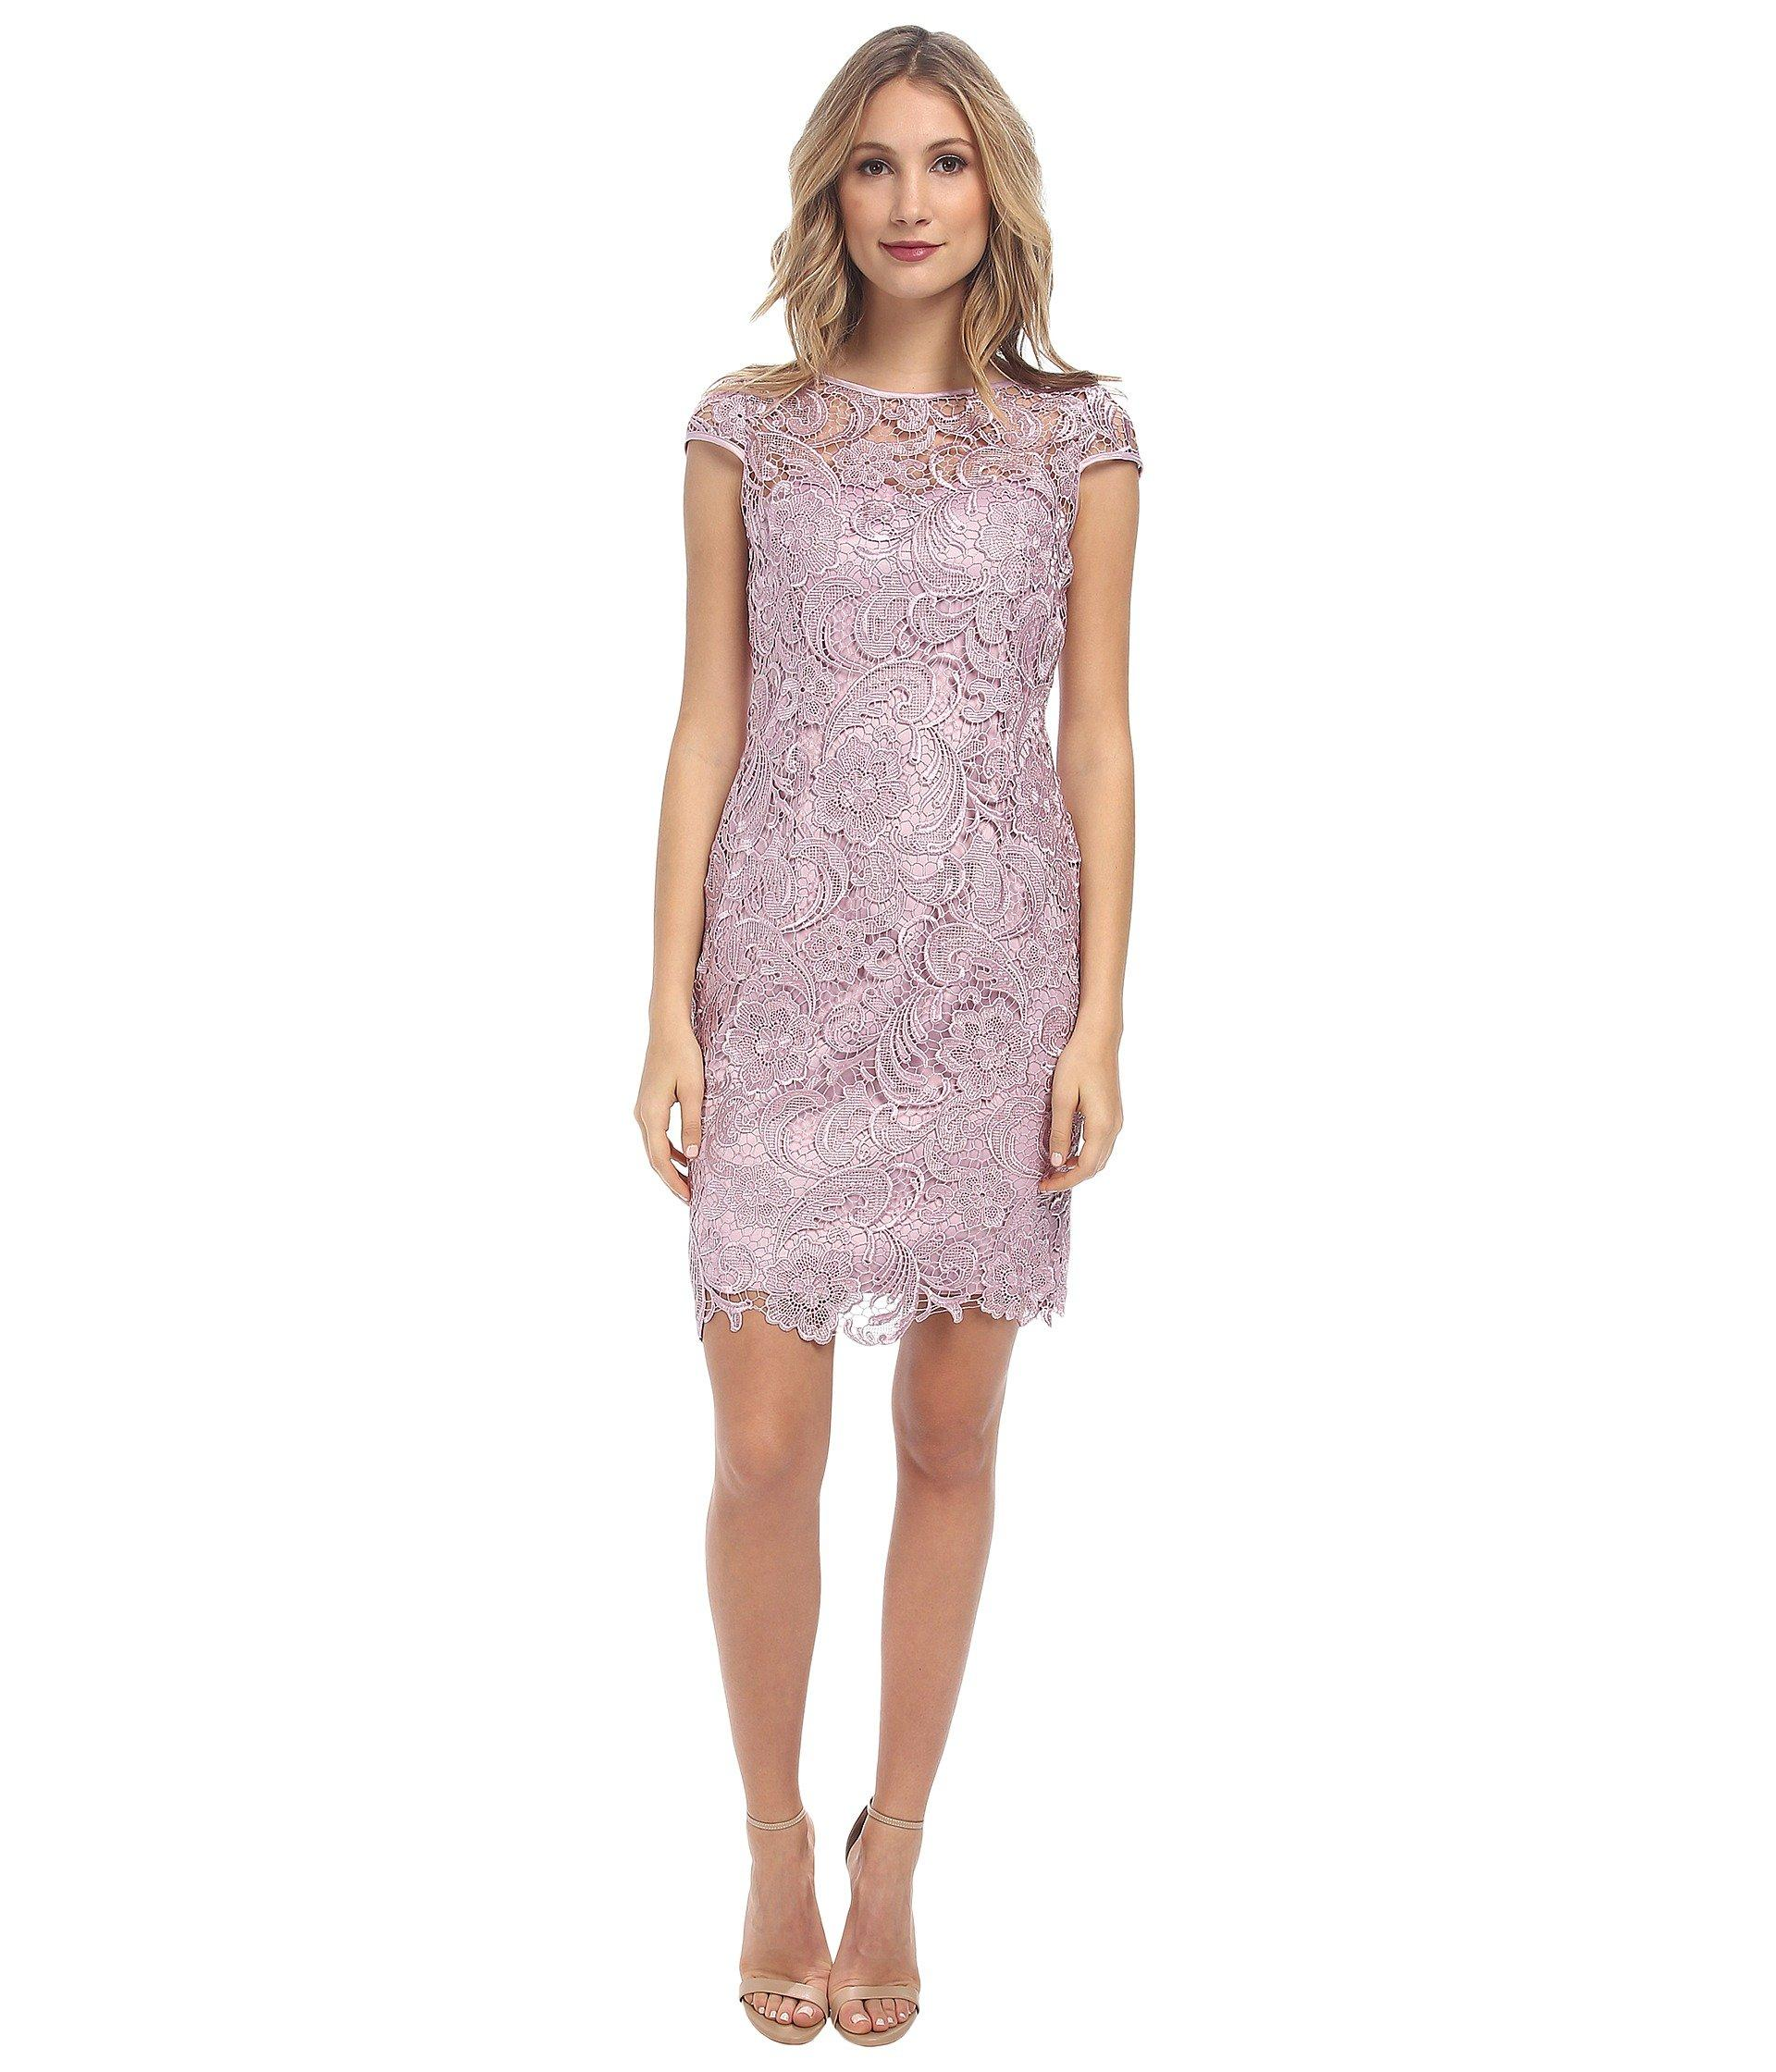 Adrianna Papell Cap Sleeve Dress In Icy Lilac